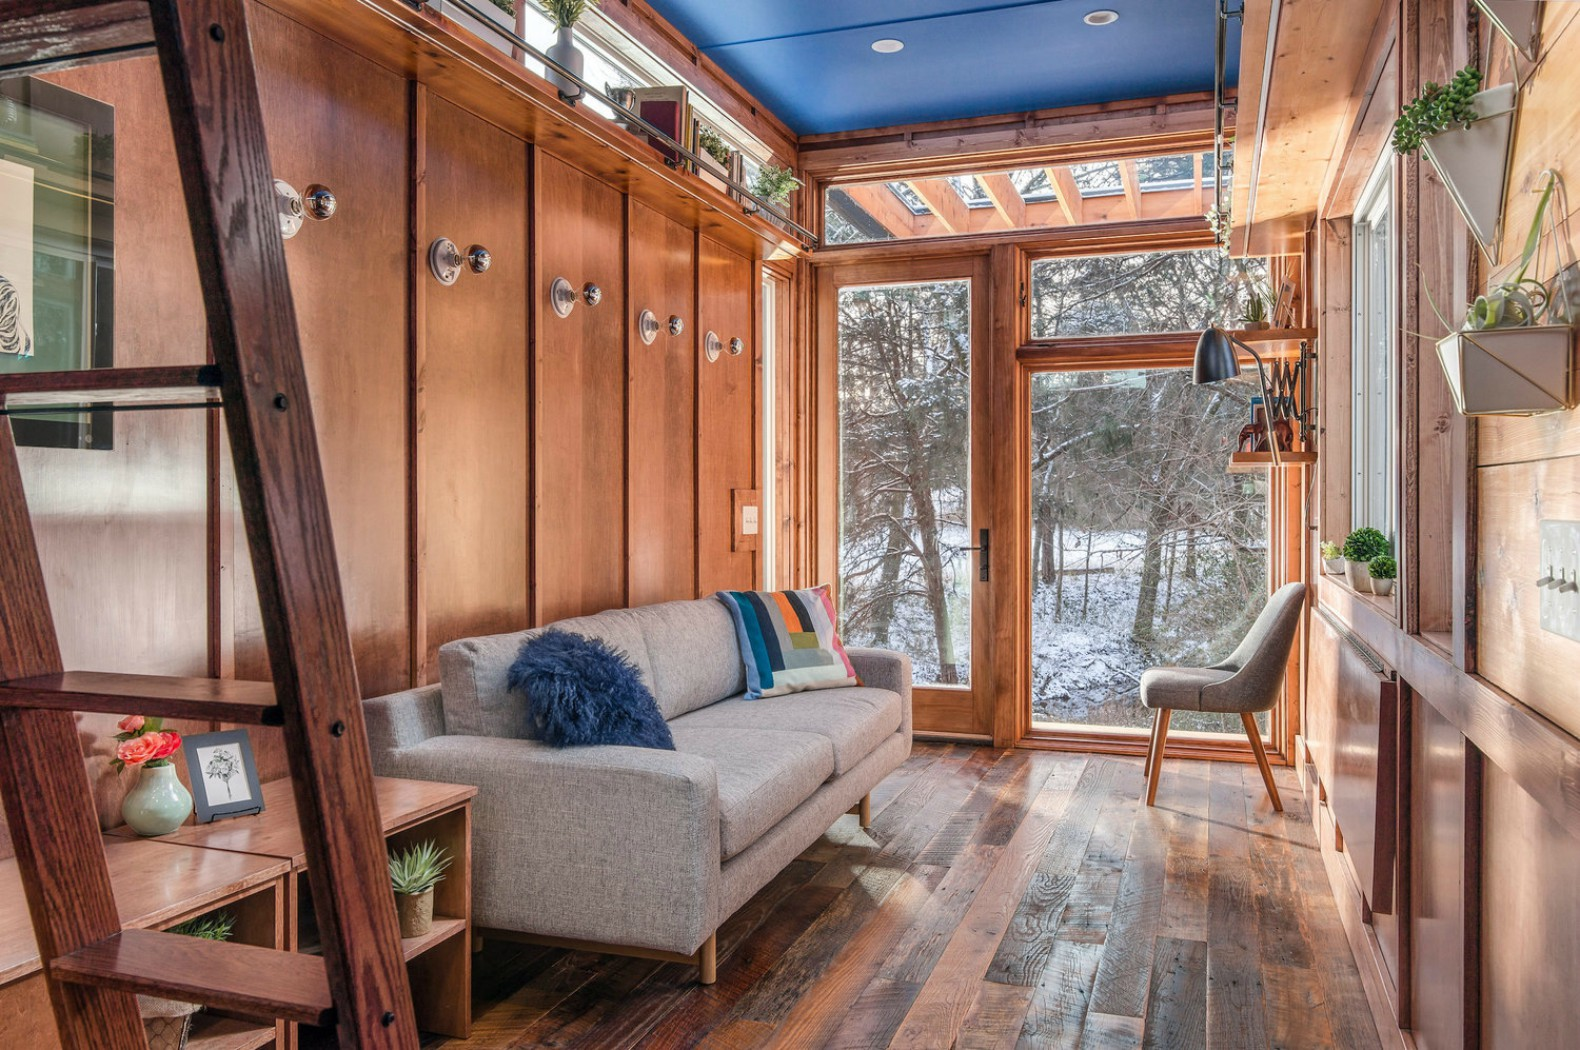 Tiny Home Design: New Frontier's Cornelia Tiny Home Is A Writer's Studio